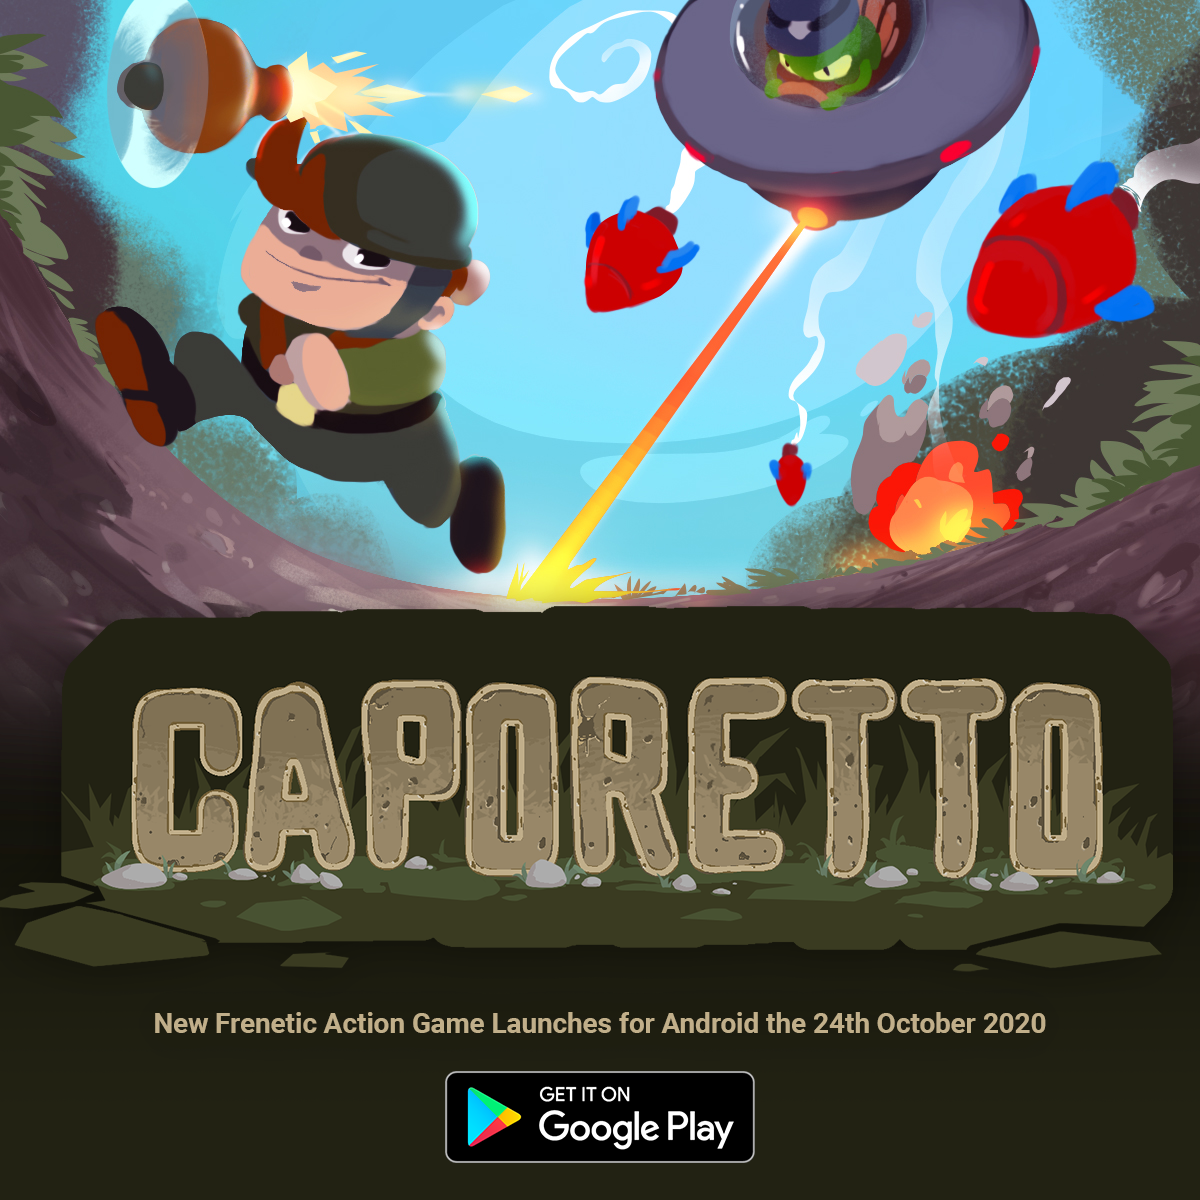 Caporetto – Casual Mobile Game published on Android by It Is The End LTD